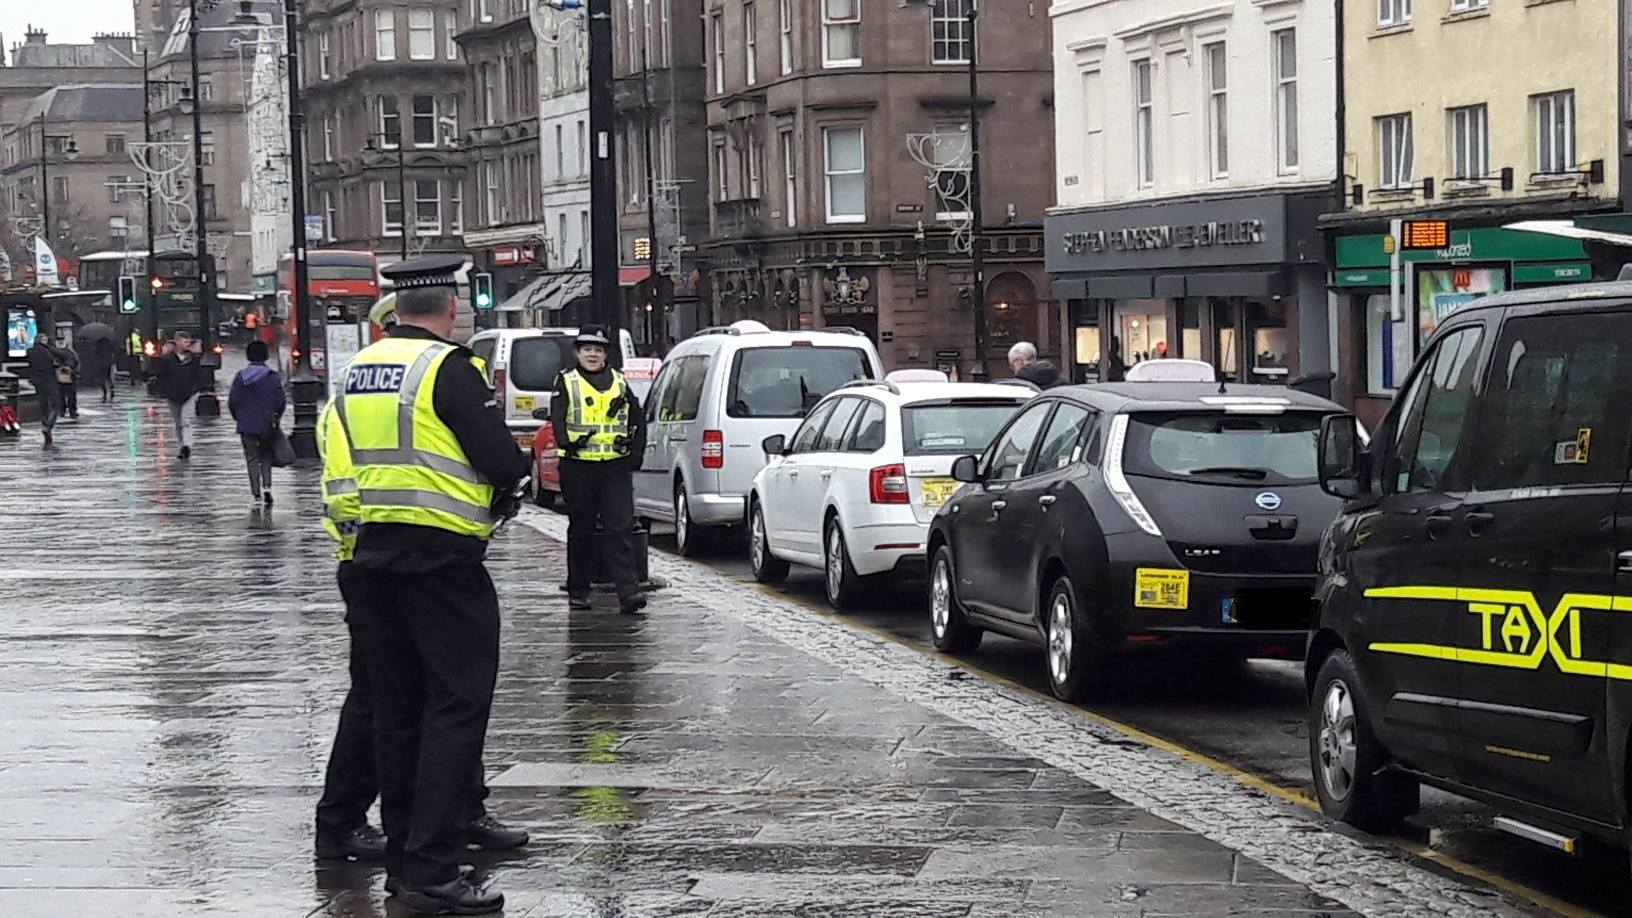 Police on their inspections of taxis in Dundee city centre